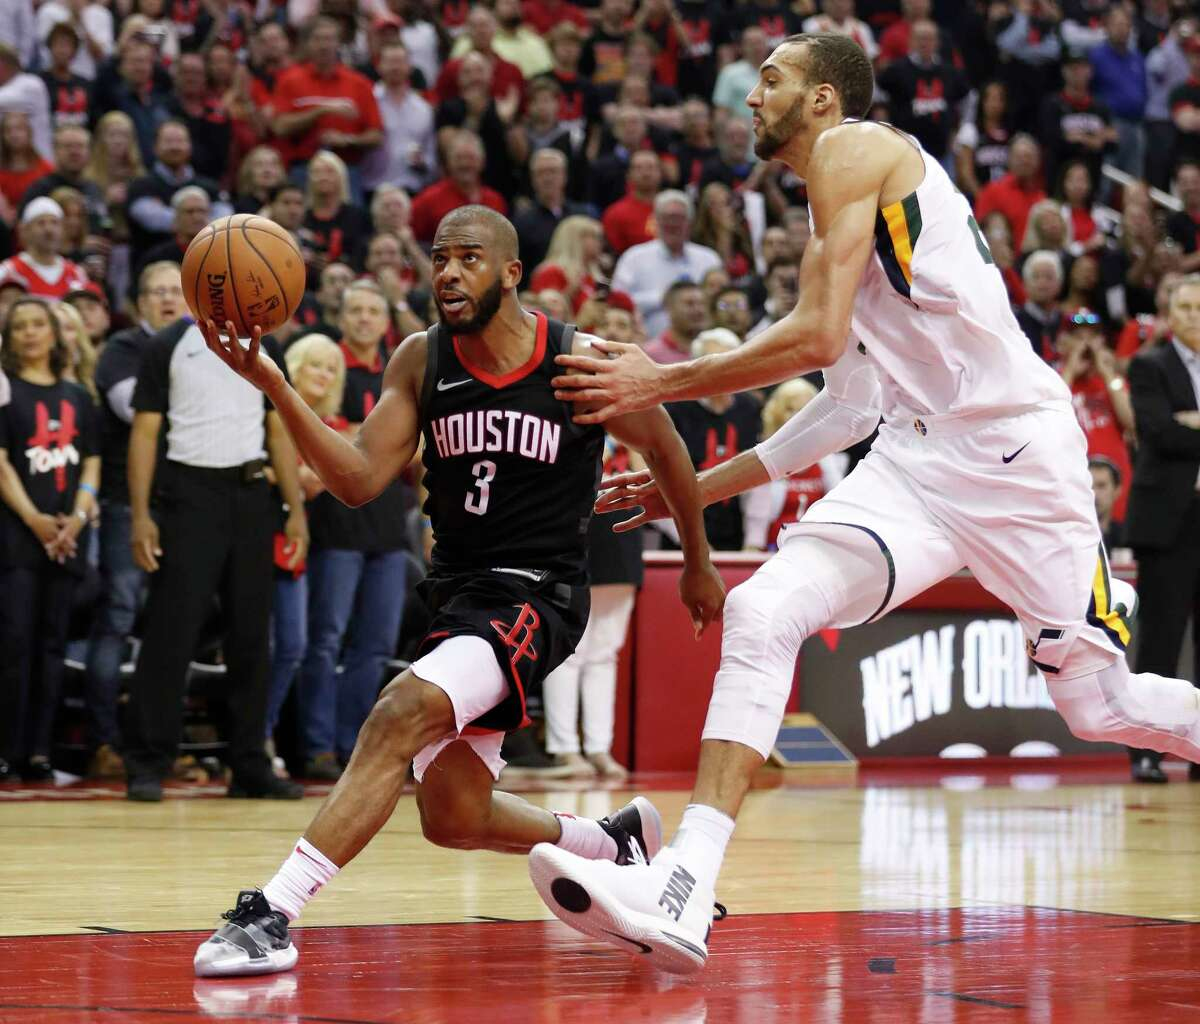 Chris Paul: The Rockets' other star guard is known as